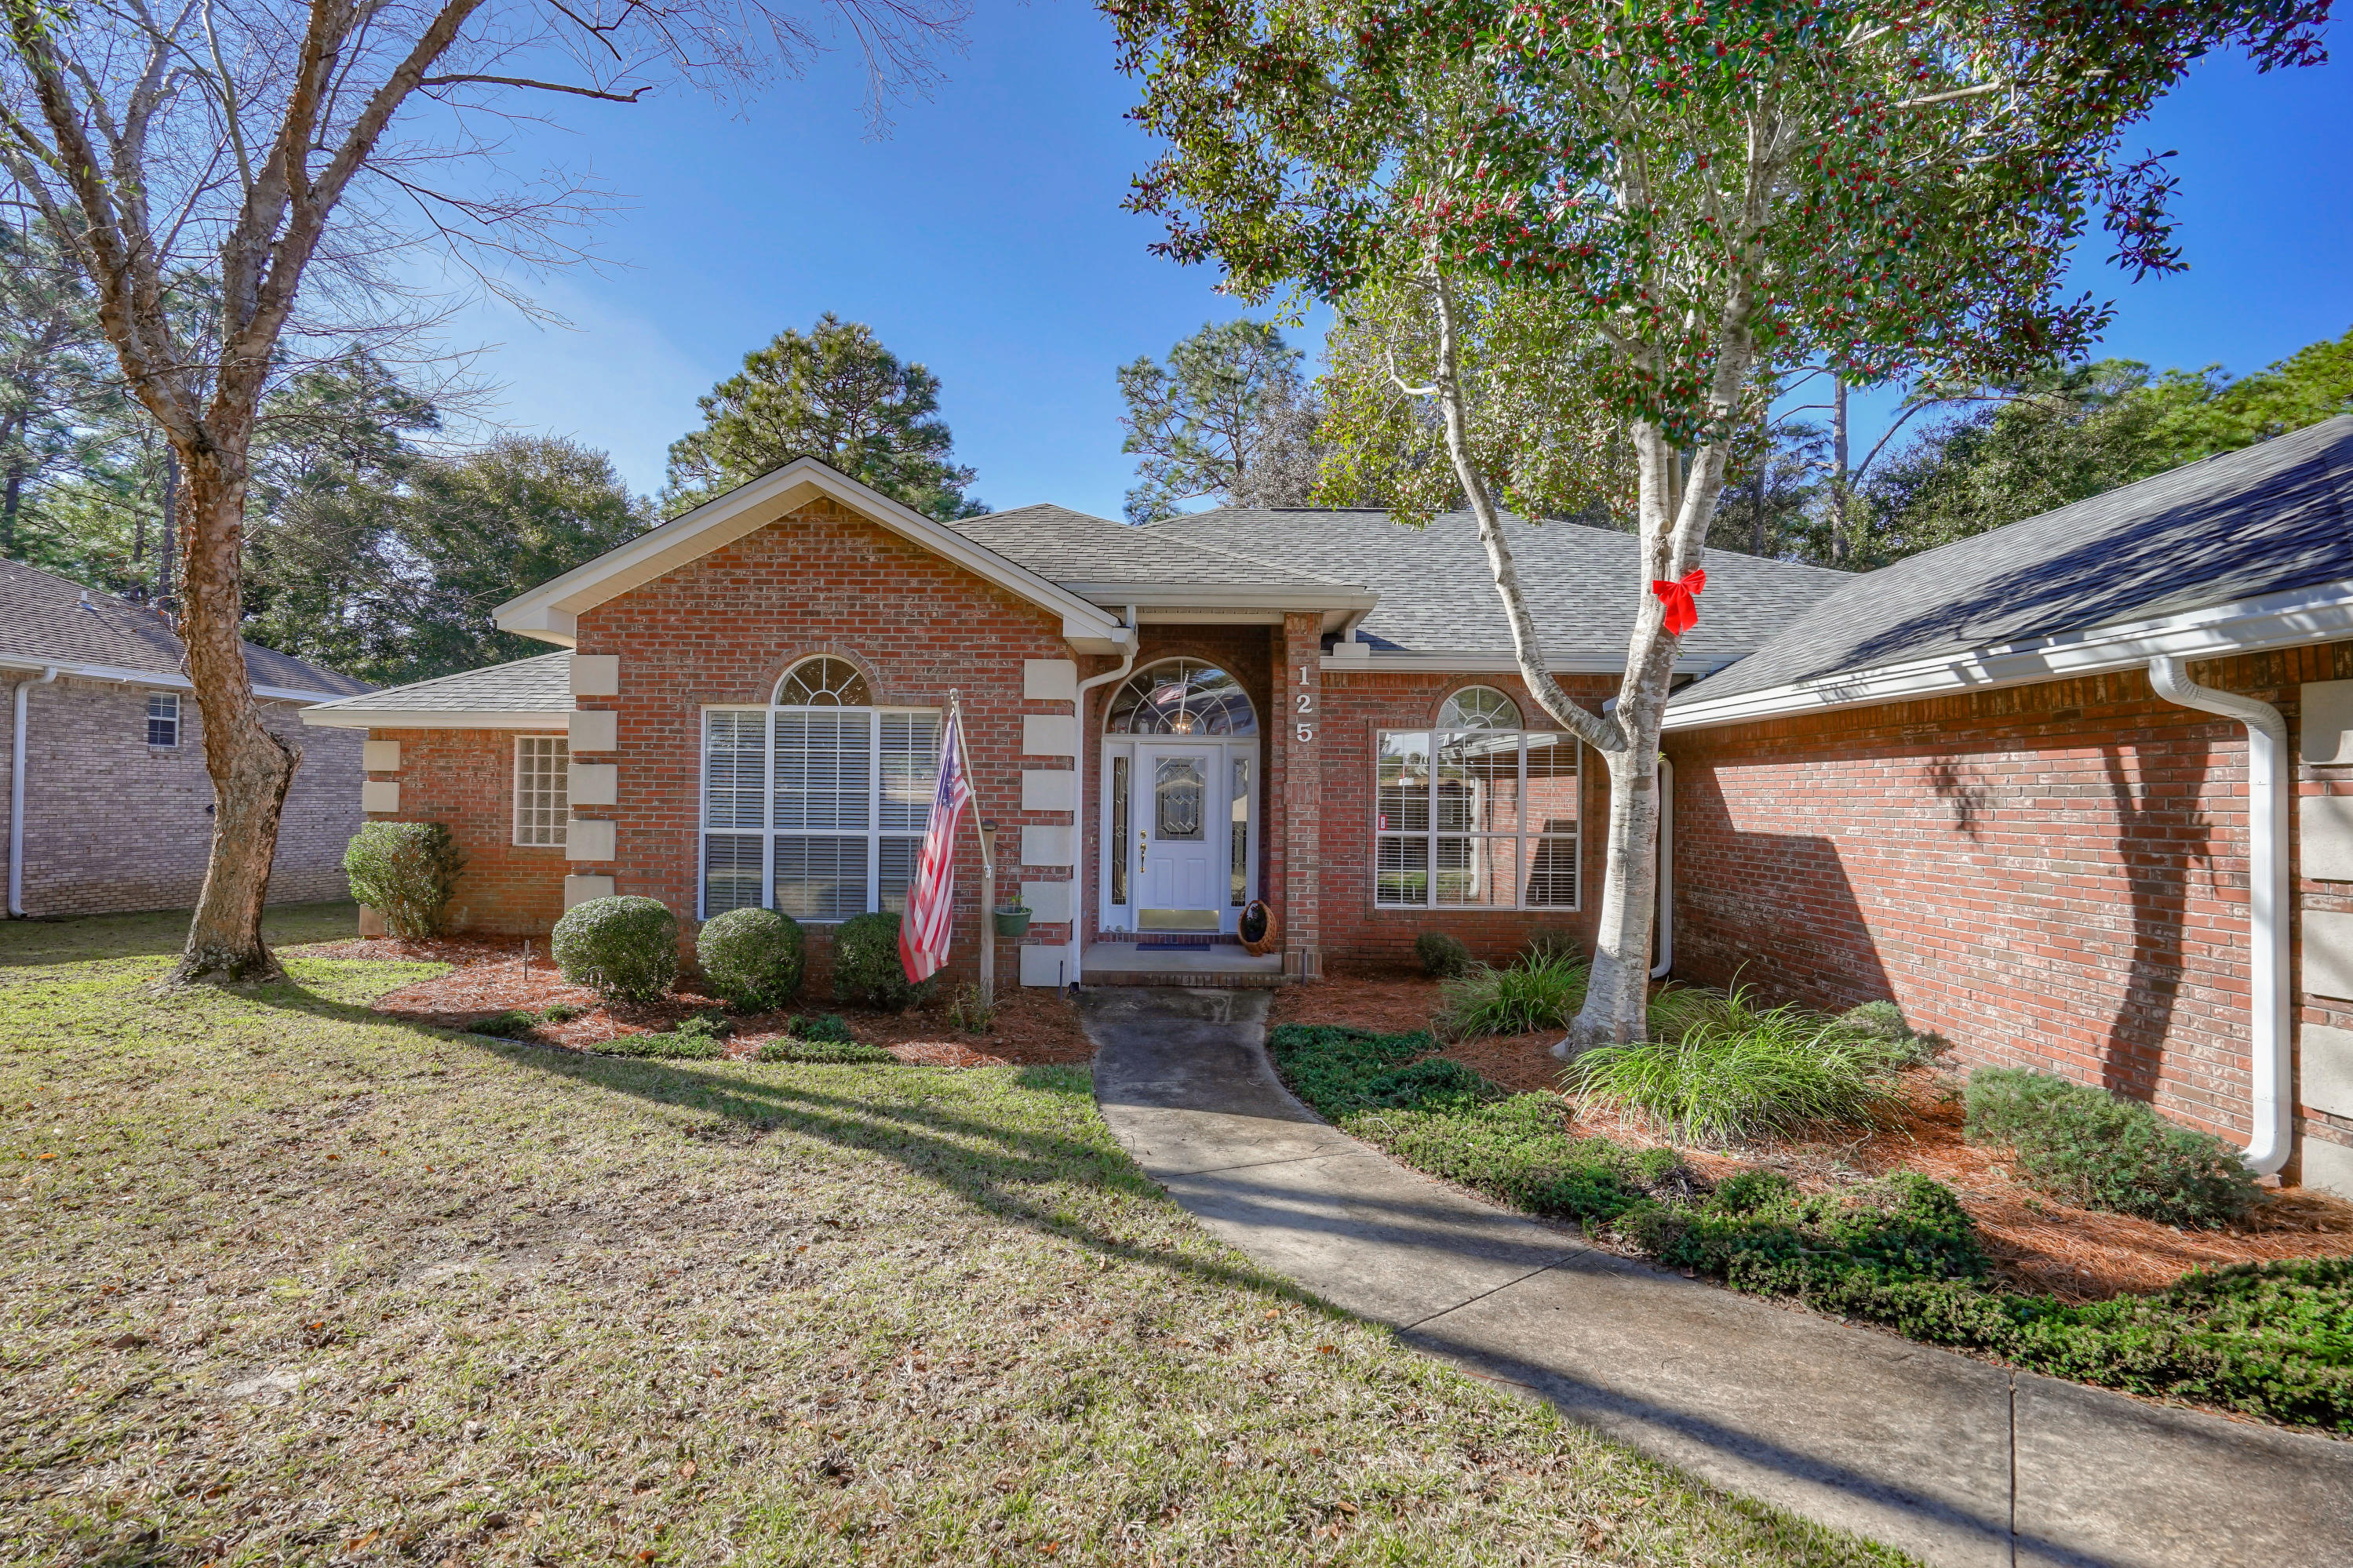 Photo of home for sale at 125 Mulry, Niceville FL